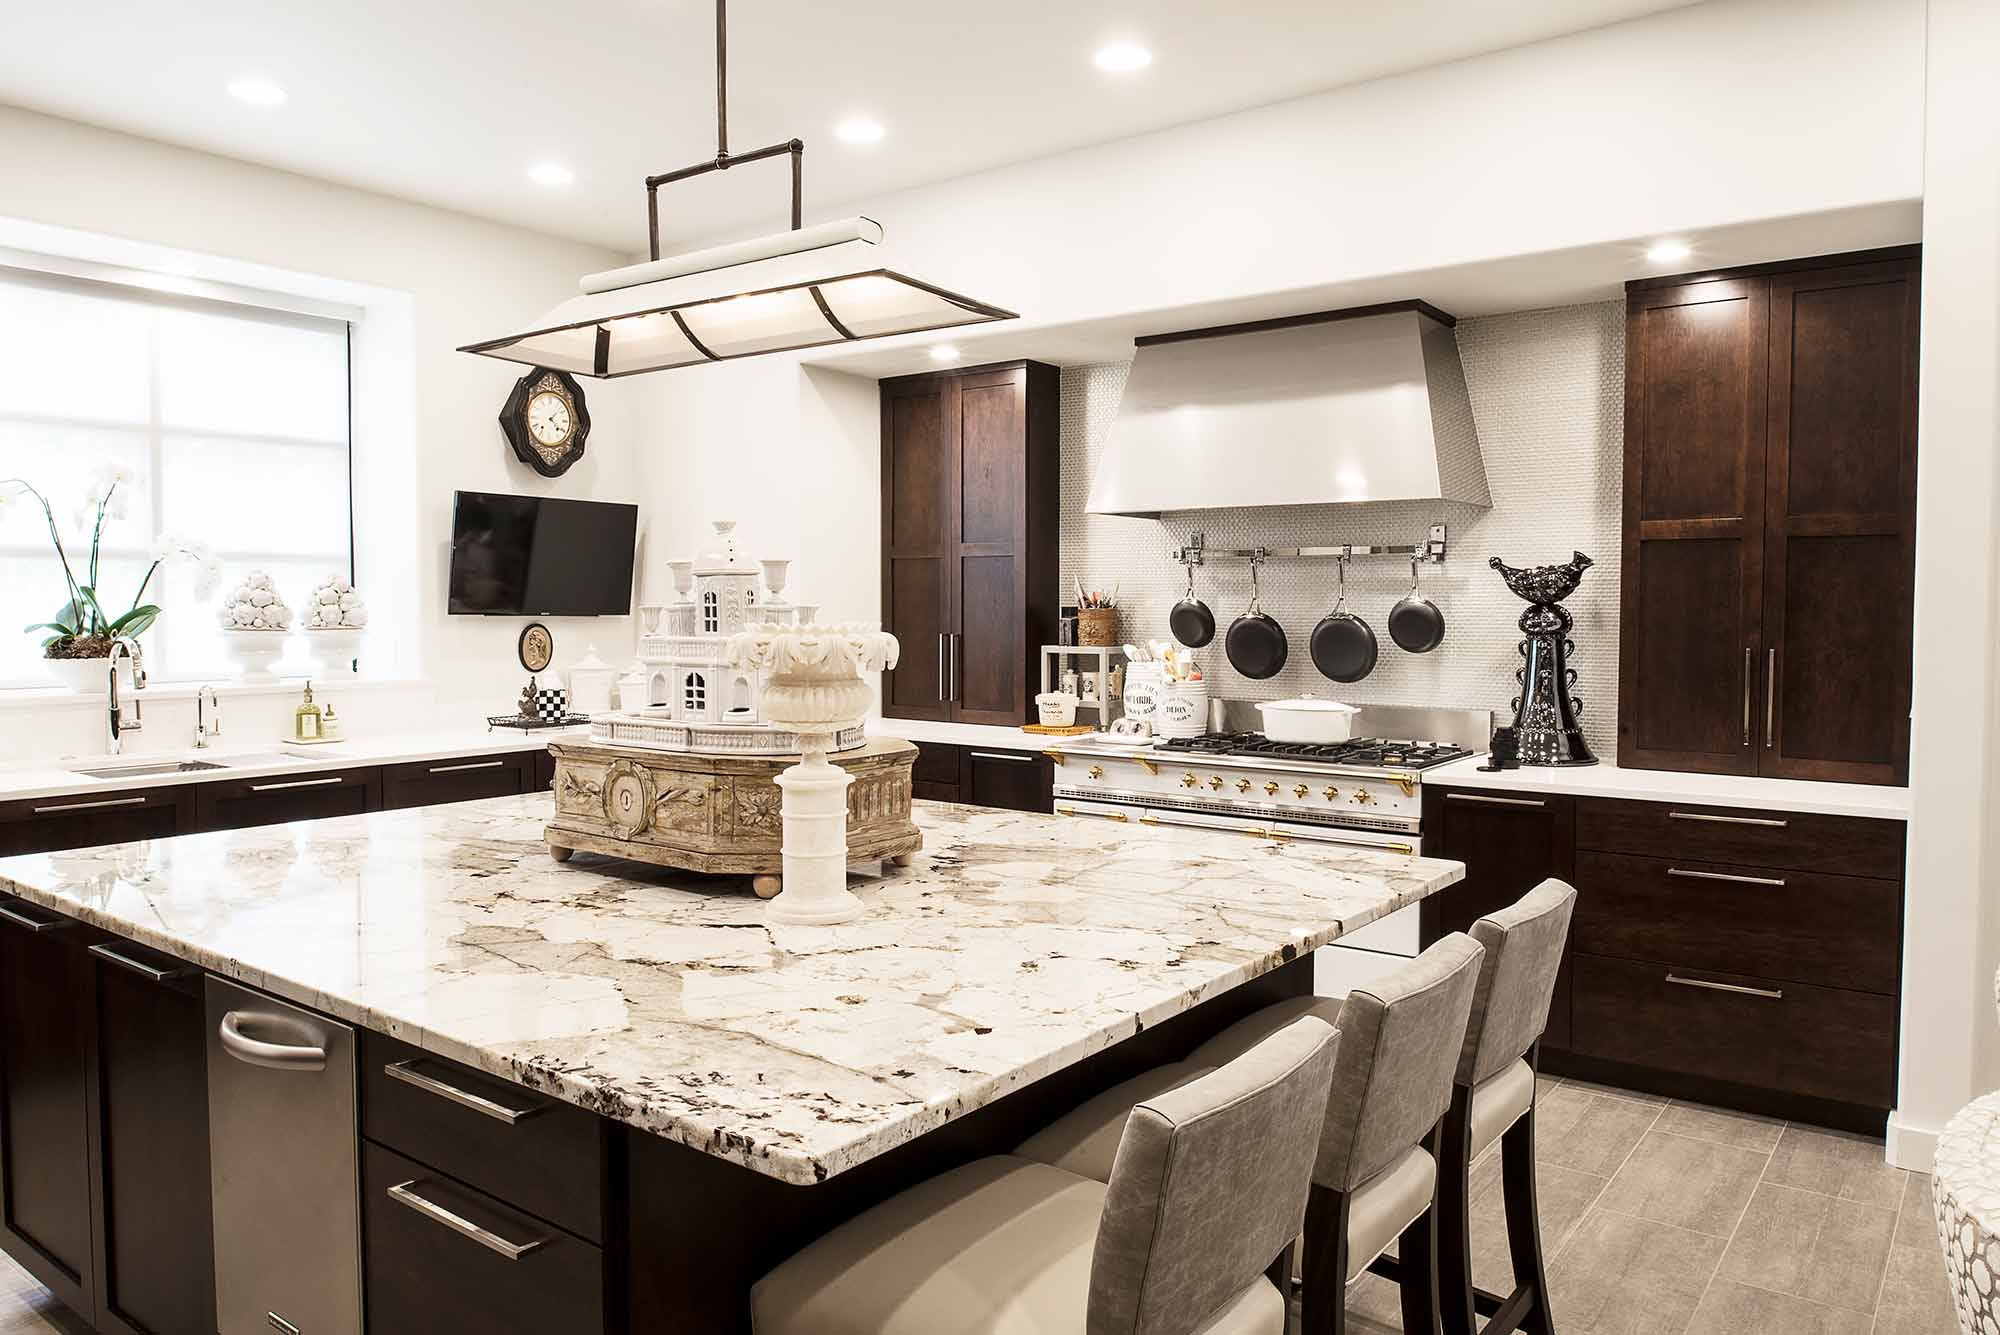 The New Antique 6 Classy Kitchen With Island And Decorative